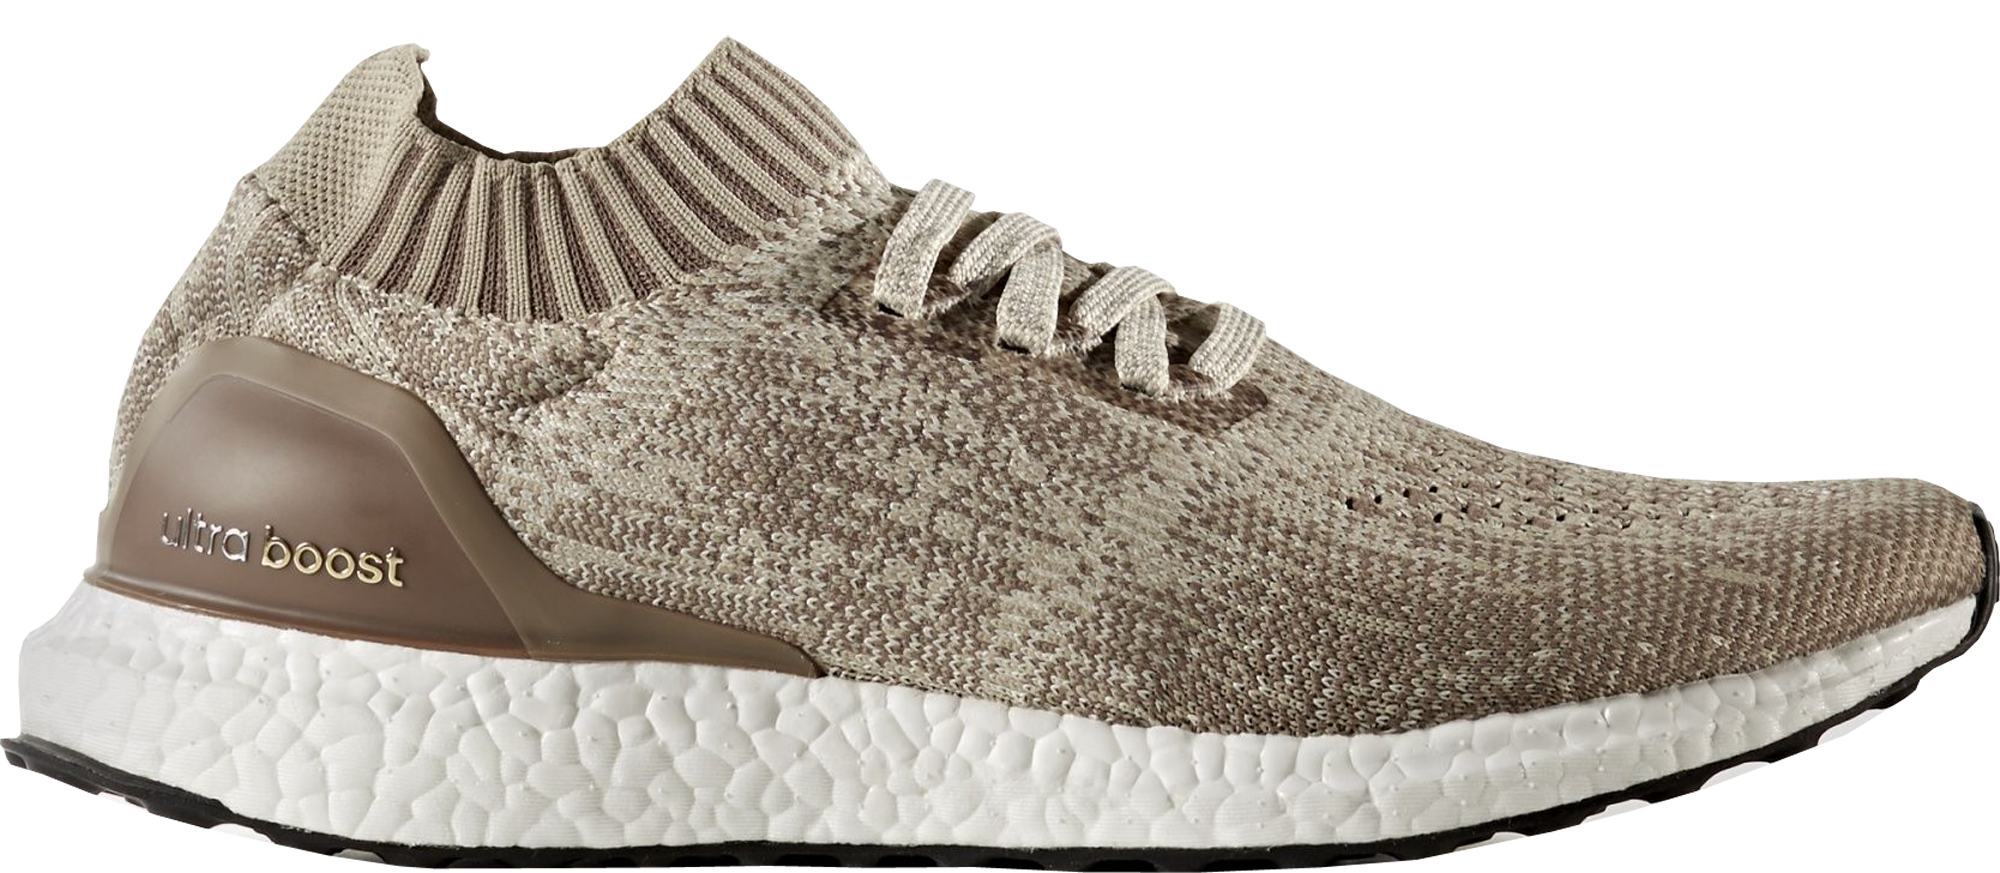 198578a9d8b9b adidas Ultra Boost Uncaged Khaki Brown - StockX News